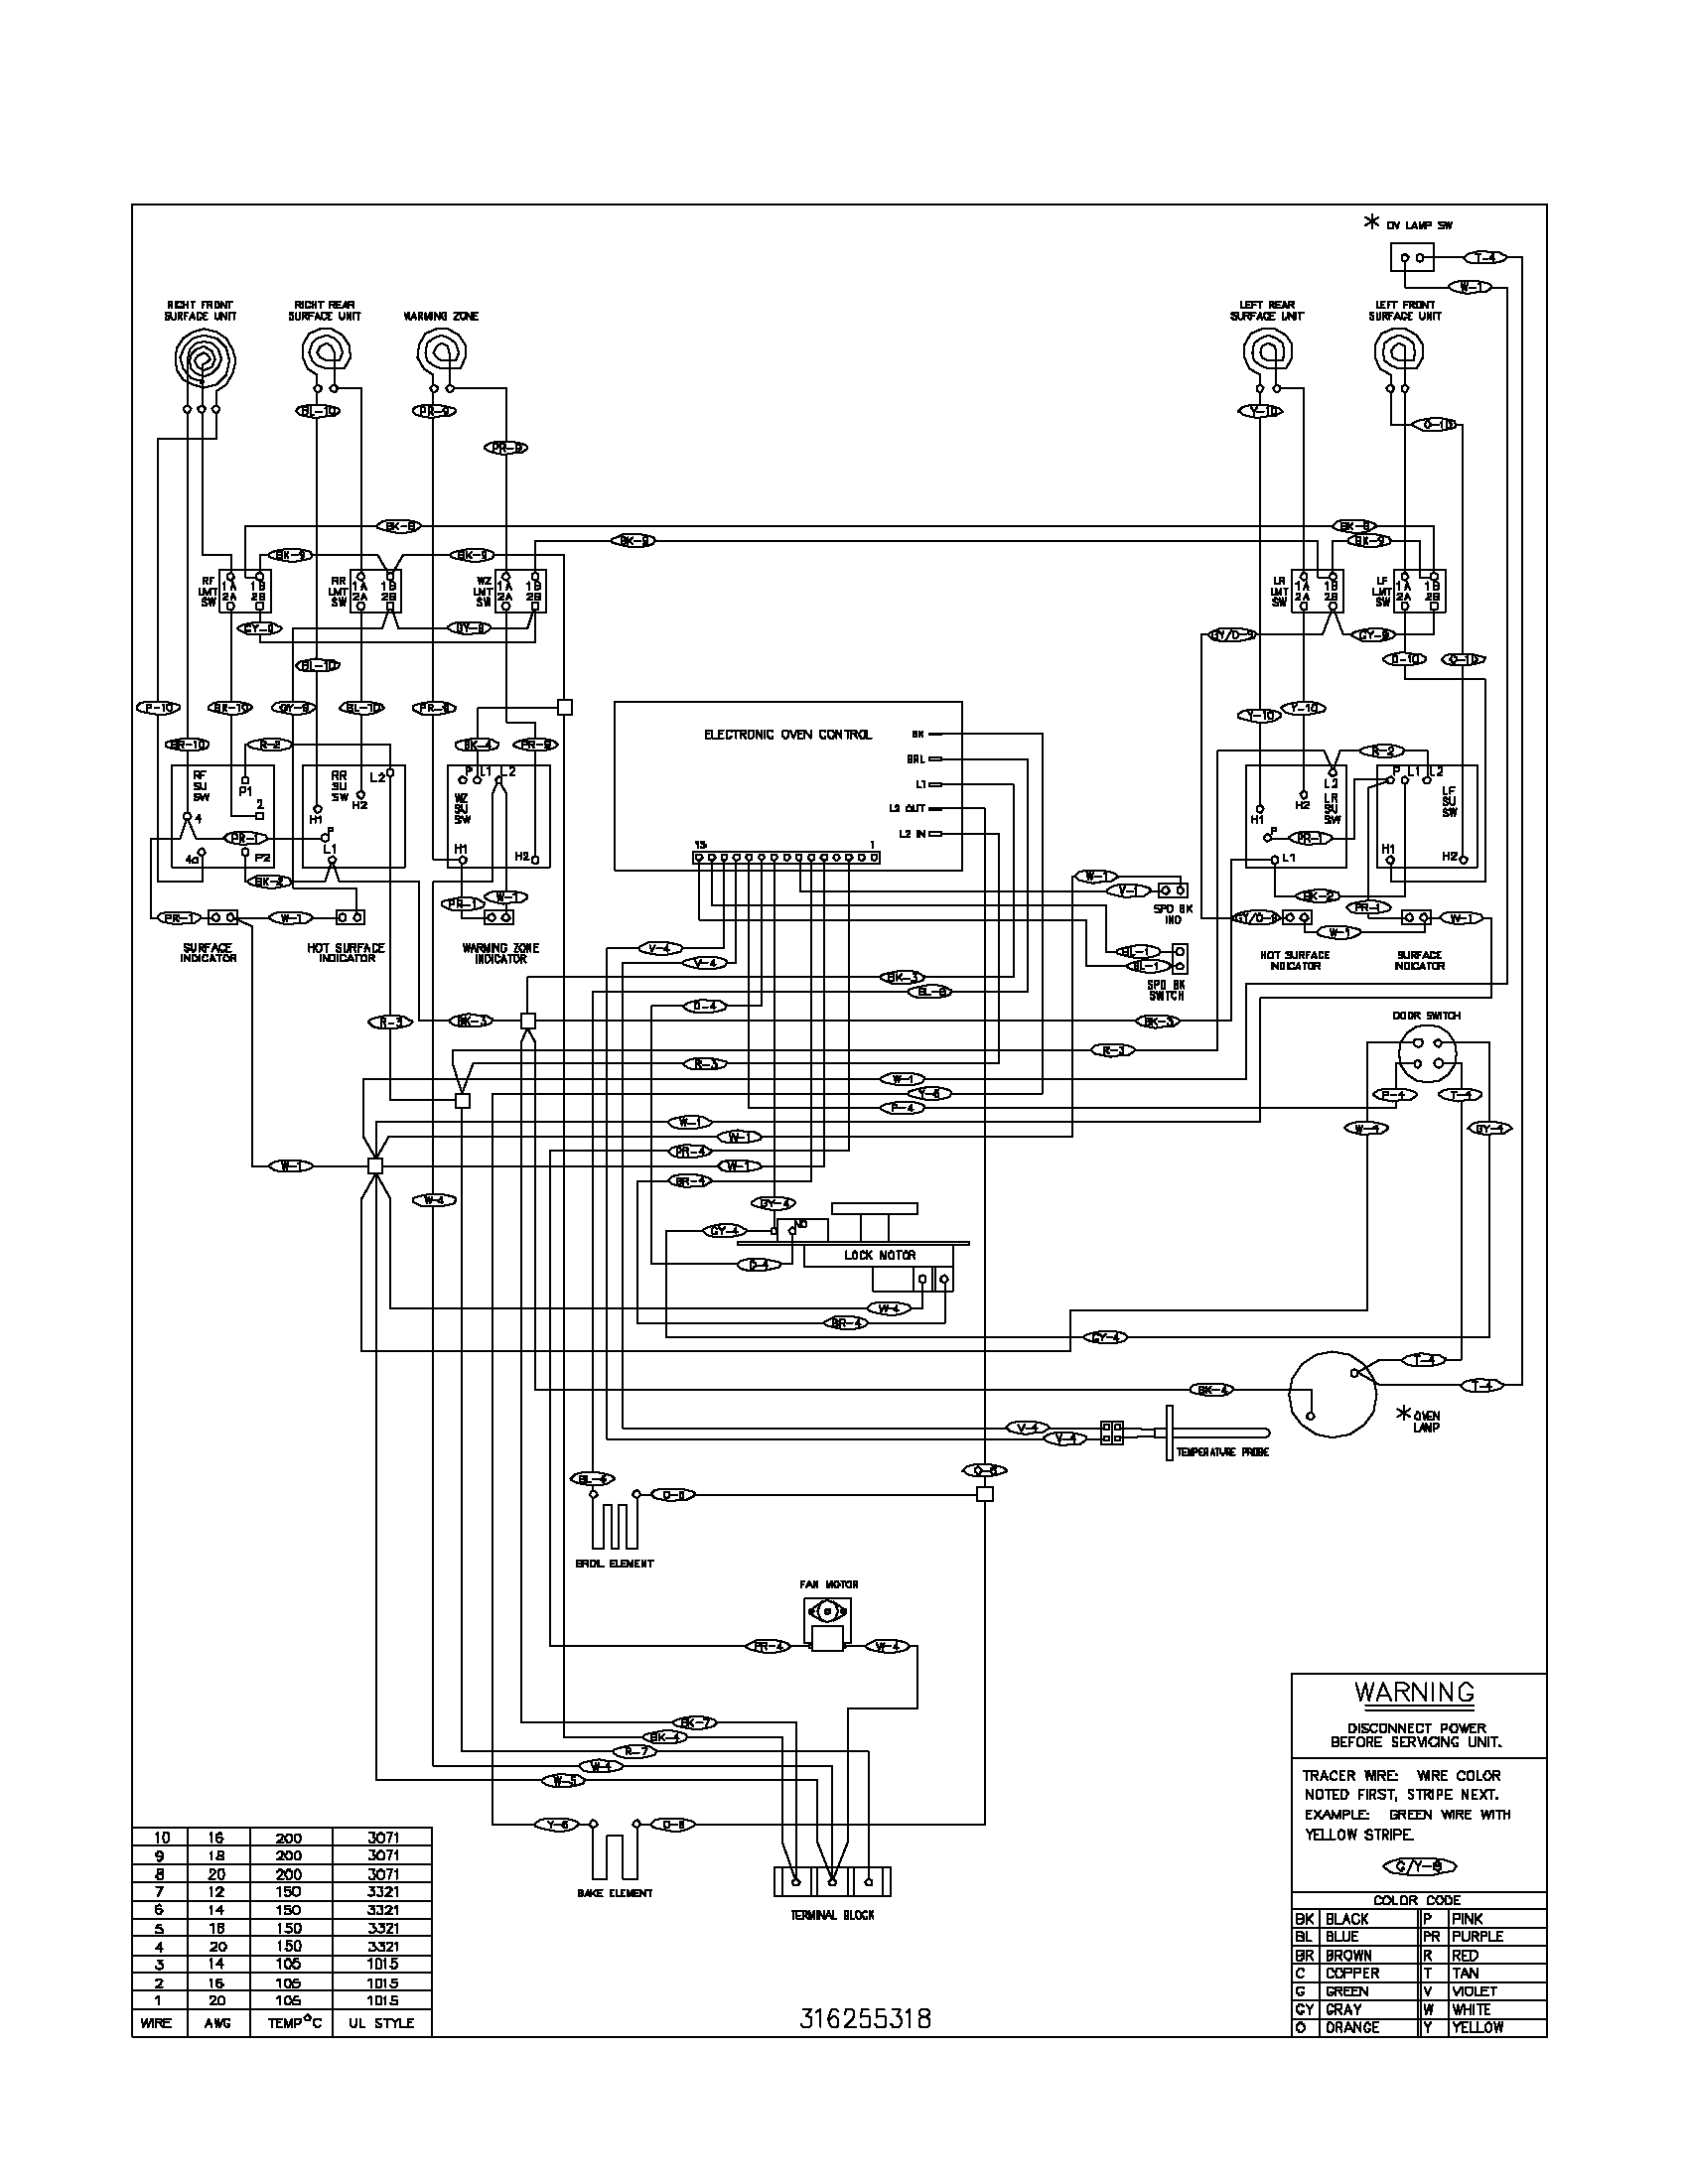 wiring installation diagram lutron 4 way frigidaire glef378cqb electric range timer stove clocks